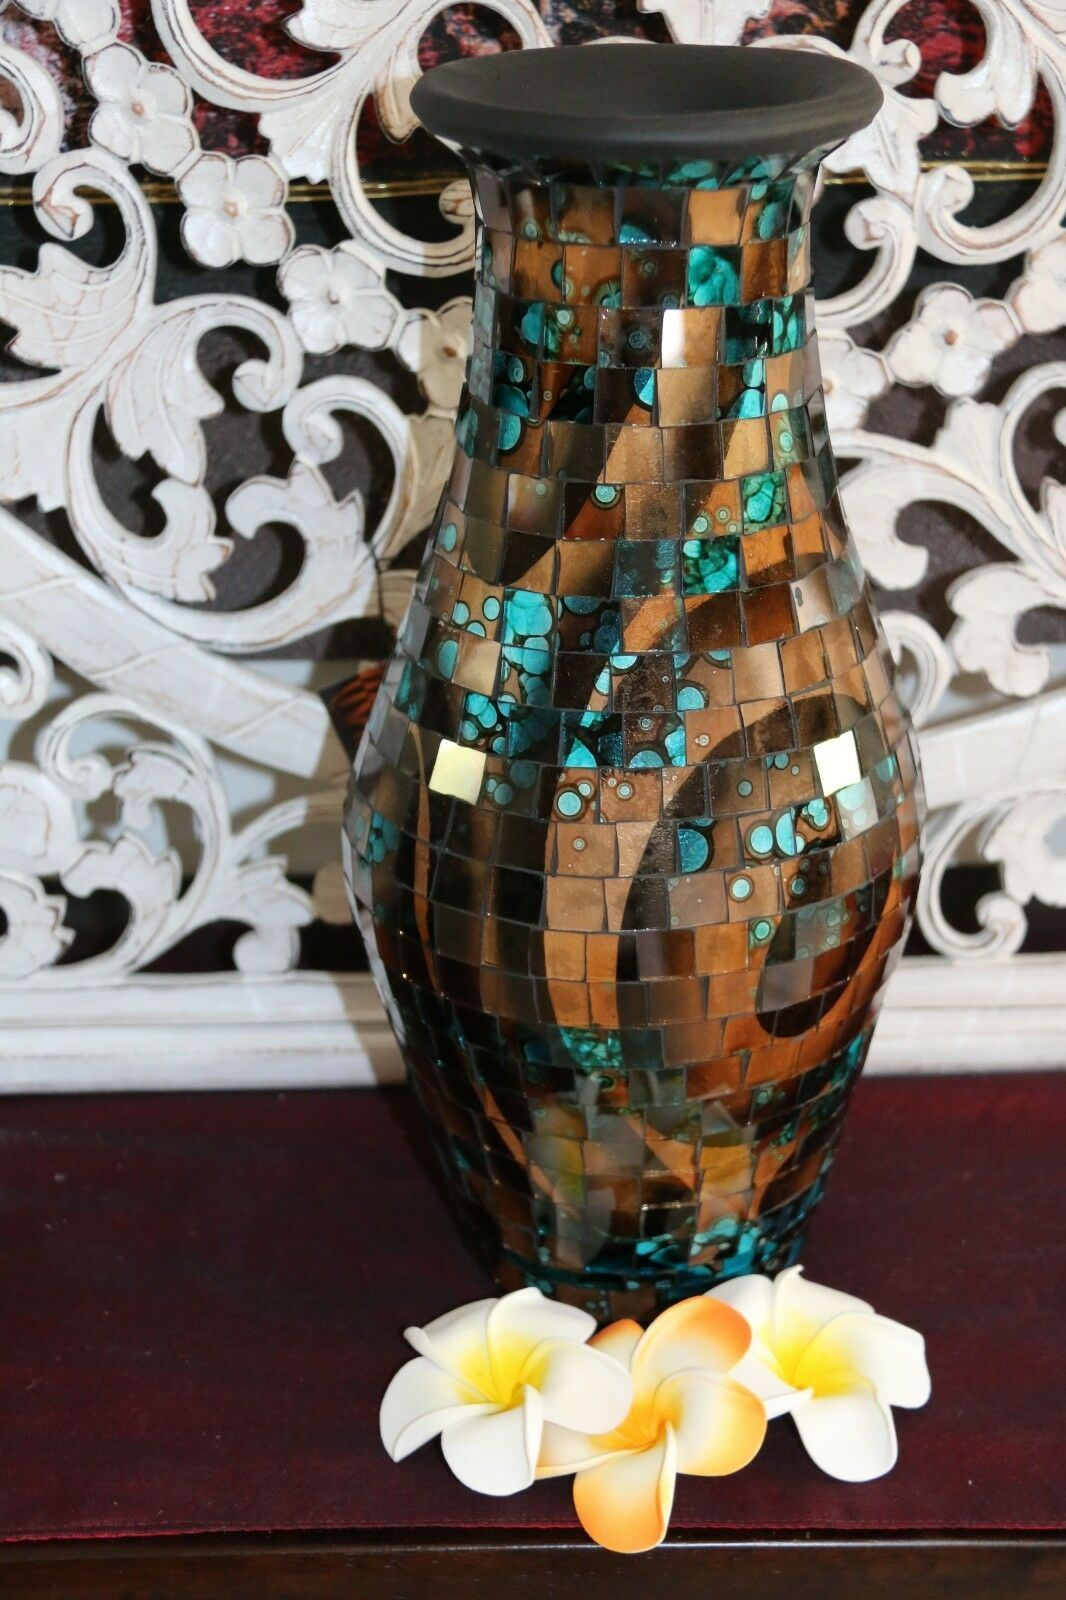 NEW Balinese Mosaic Decorative Vase - 2 Sizes!!  Bali Mosaic Vase Blue/Brown